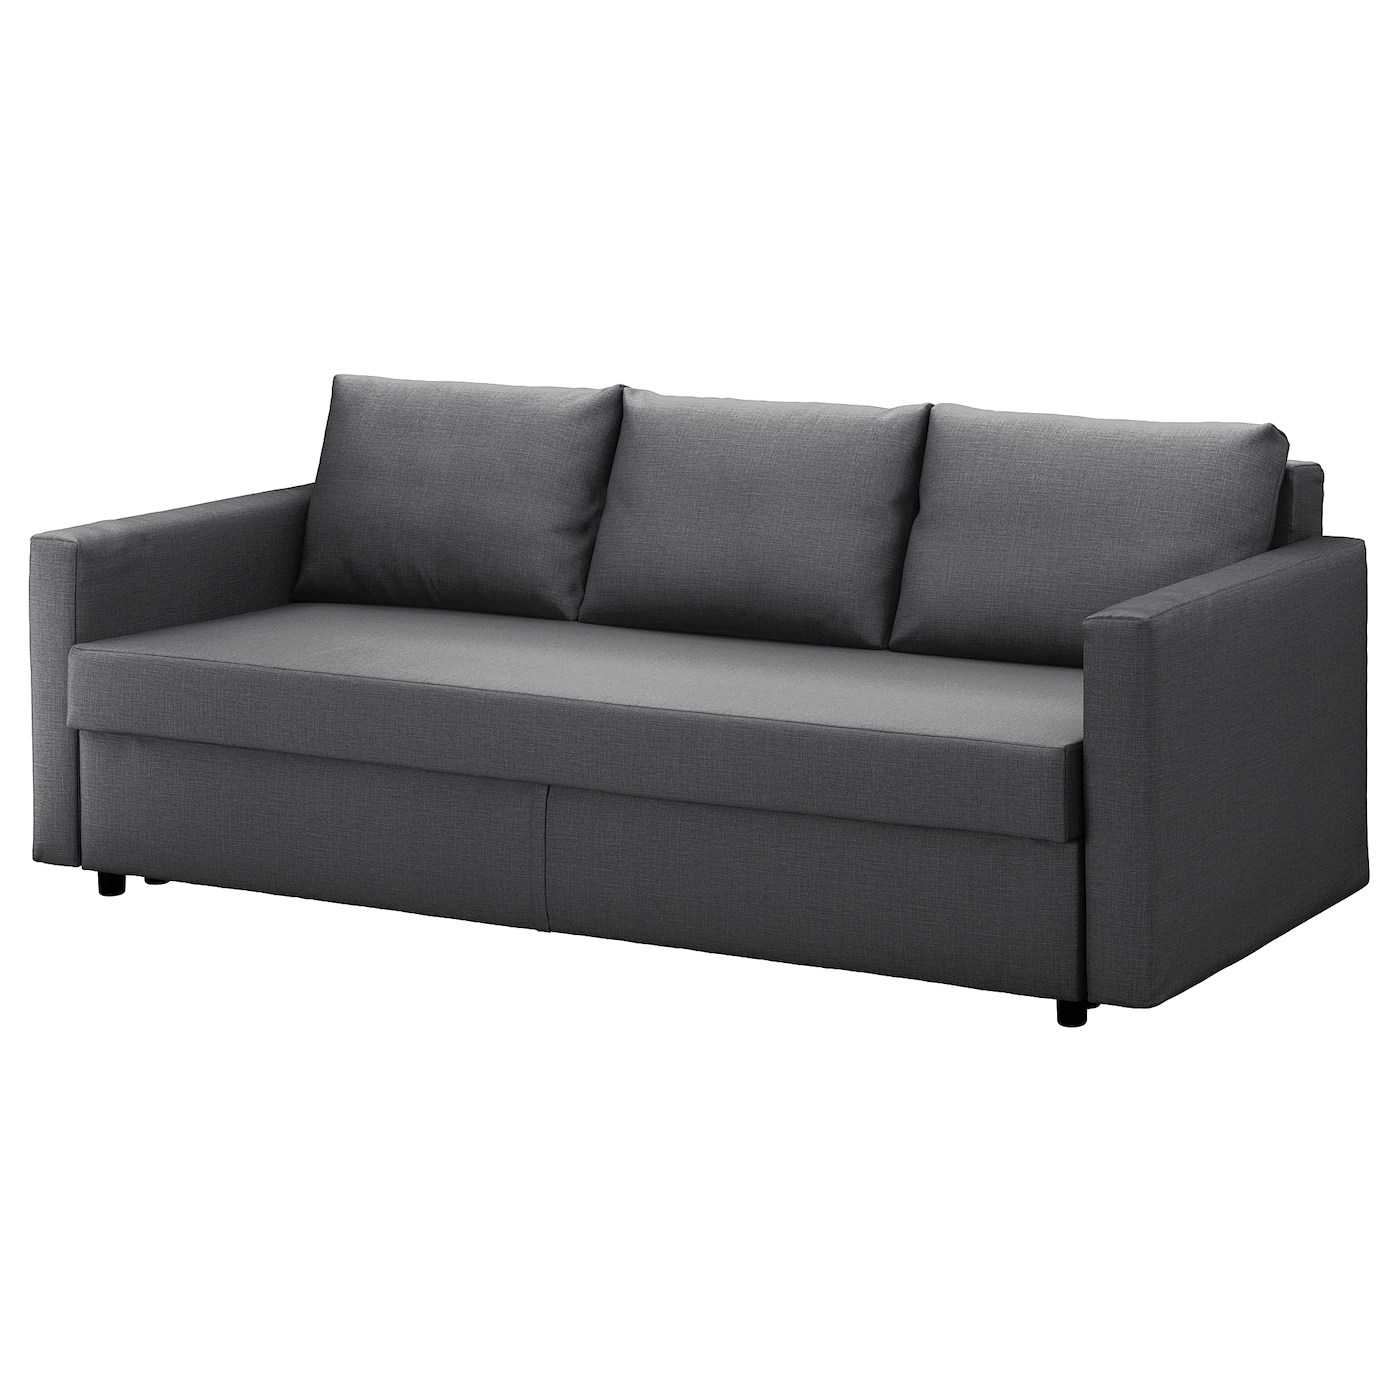 Schlafsofa Cor Corner Sofa Beds Futons Chair Beds Ikea